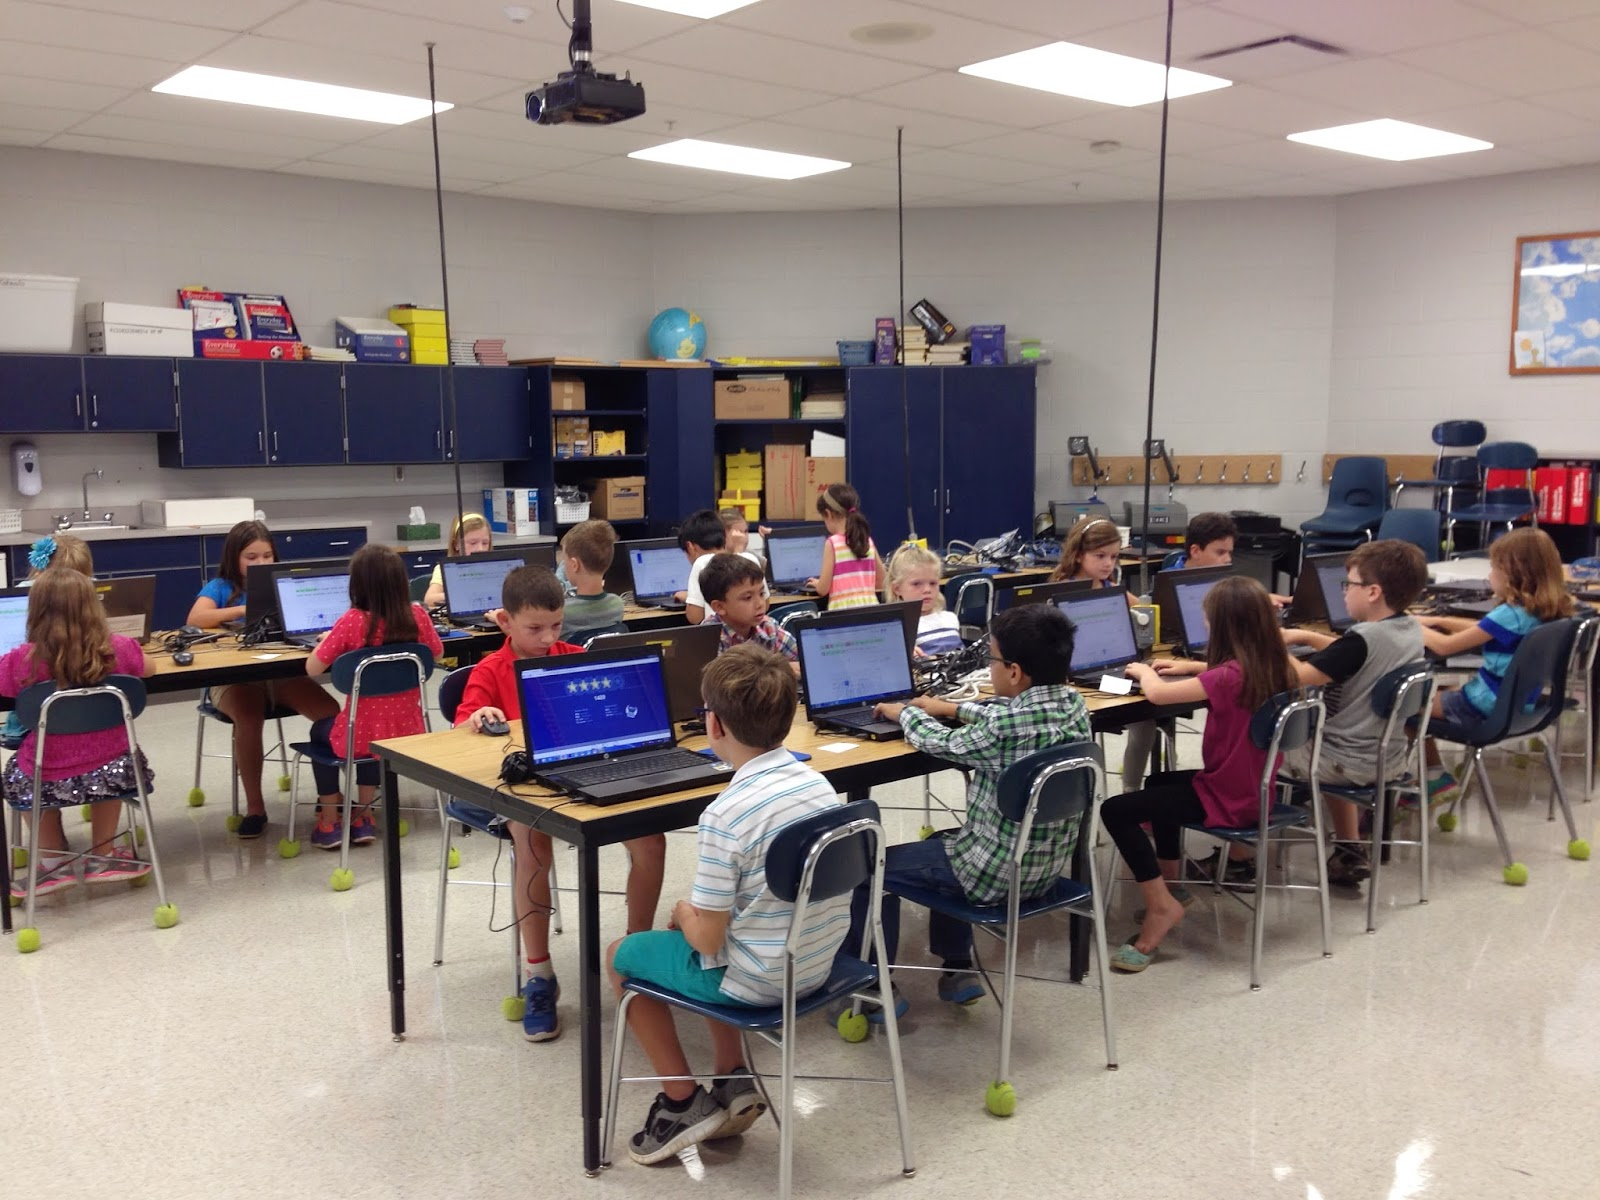 Pictures of 2nd grade classrooms Assumption Catholic School - Jacksonville, FL